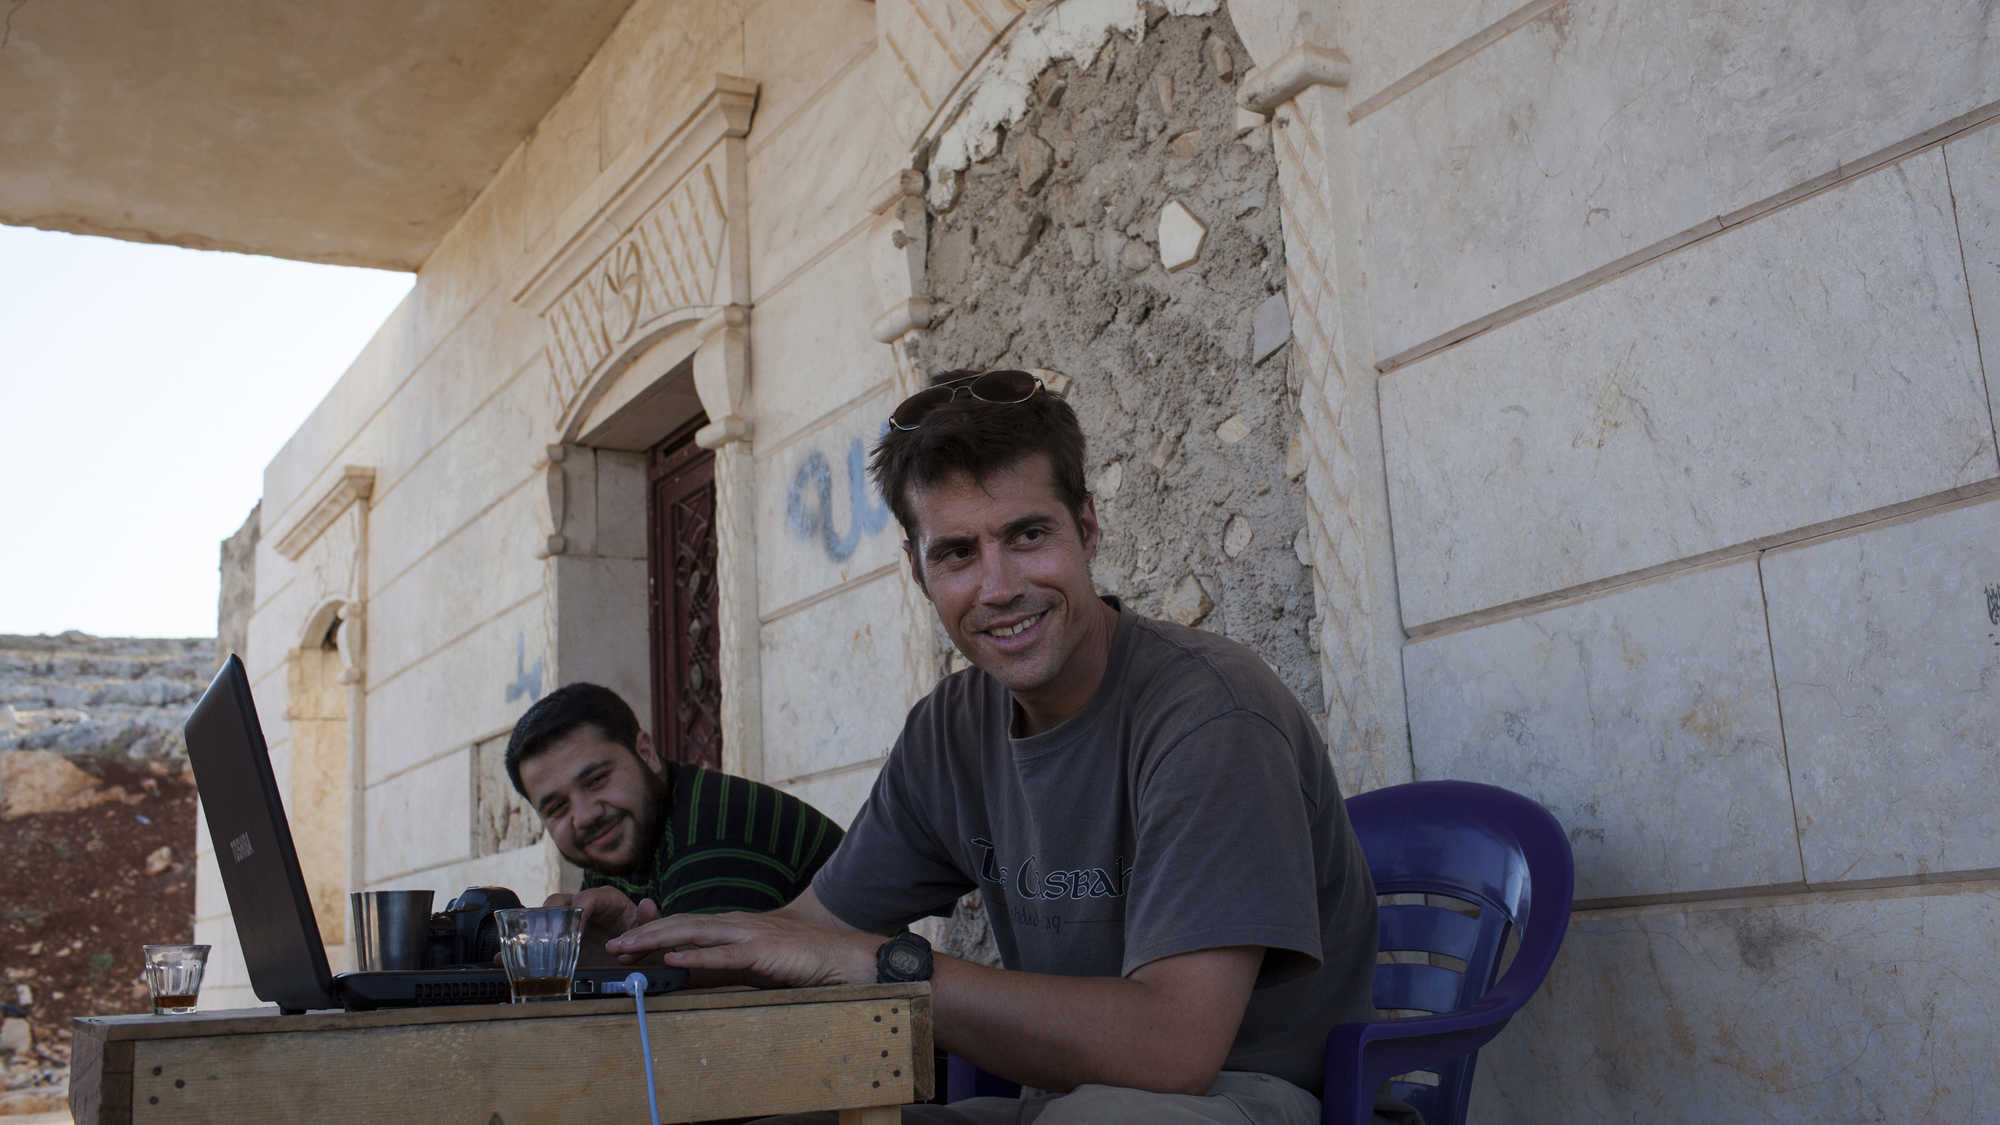 Jim: The James Foley Story (image 2)